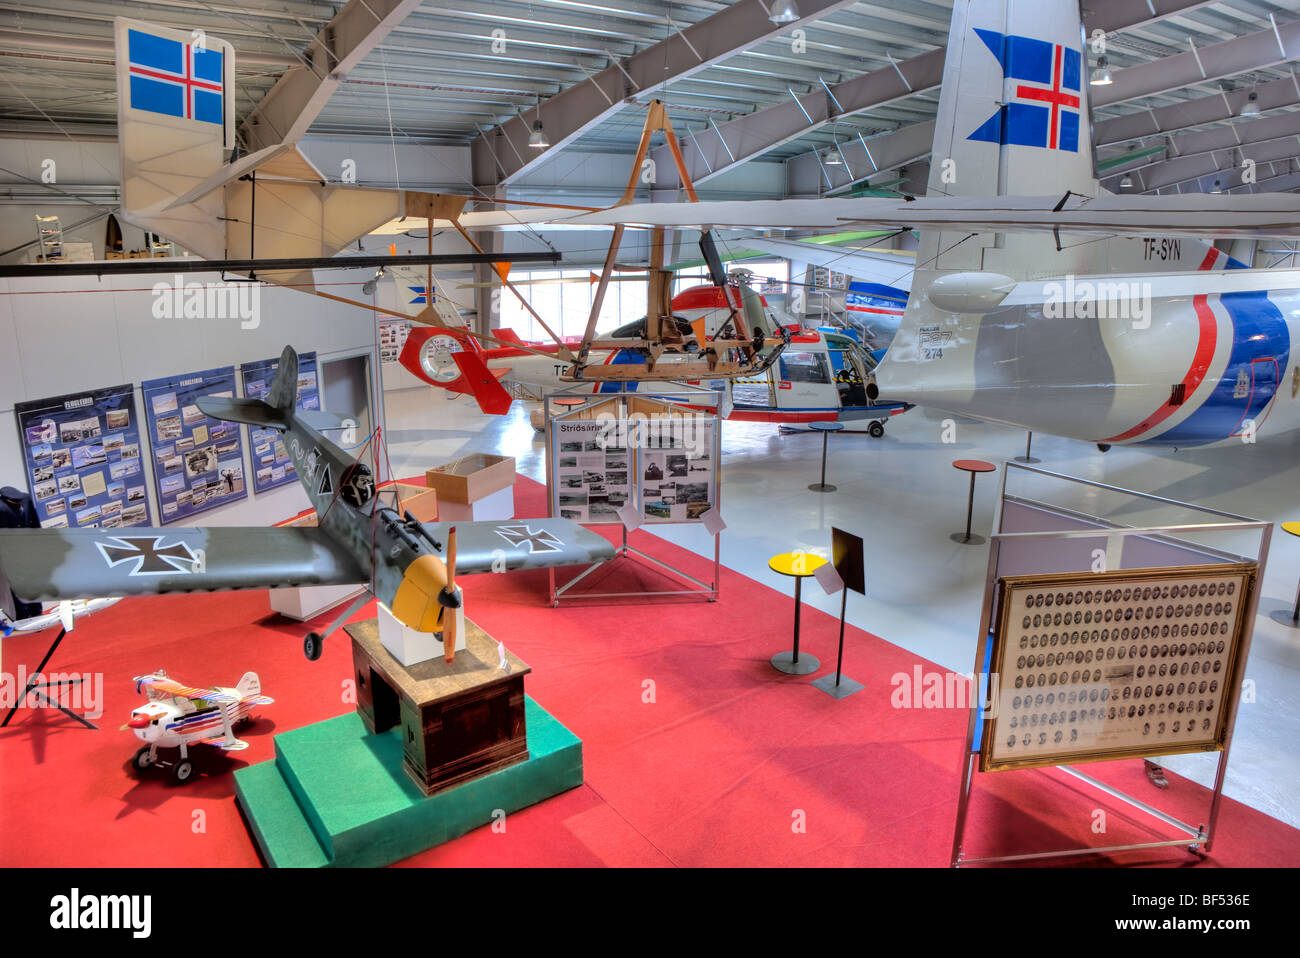 The Aviation Museum in Akureyri, Iceland - Stock Image